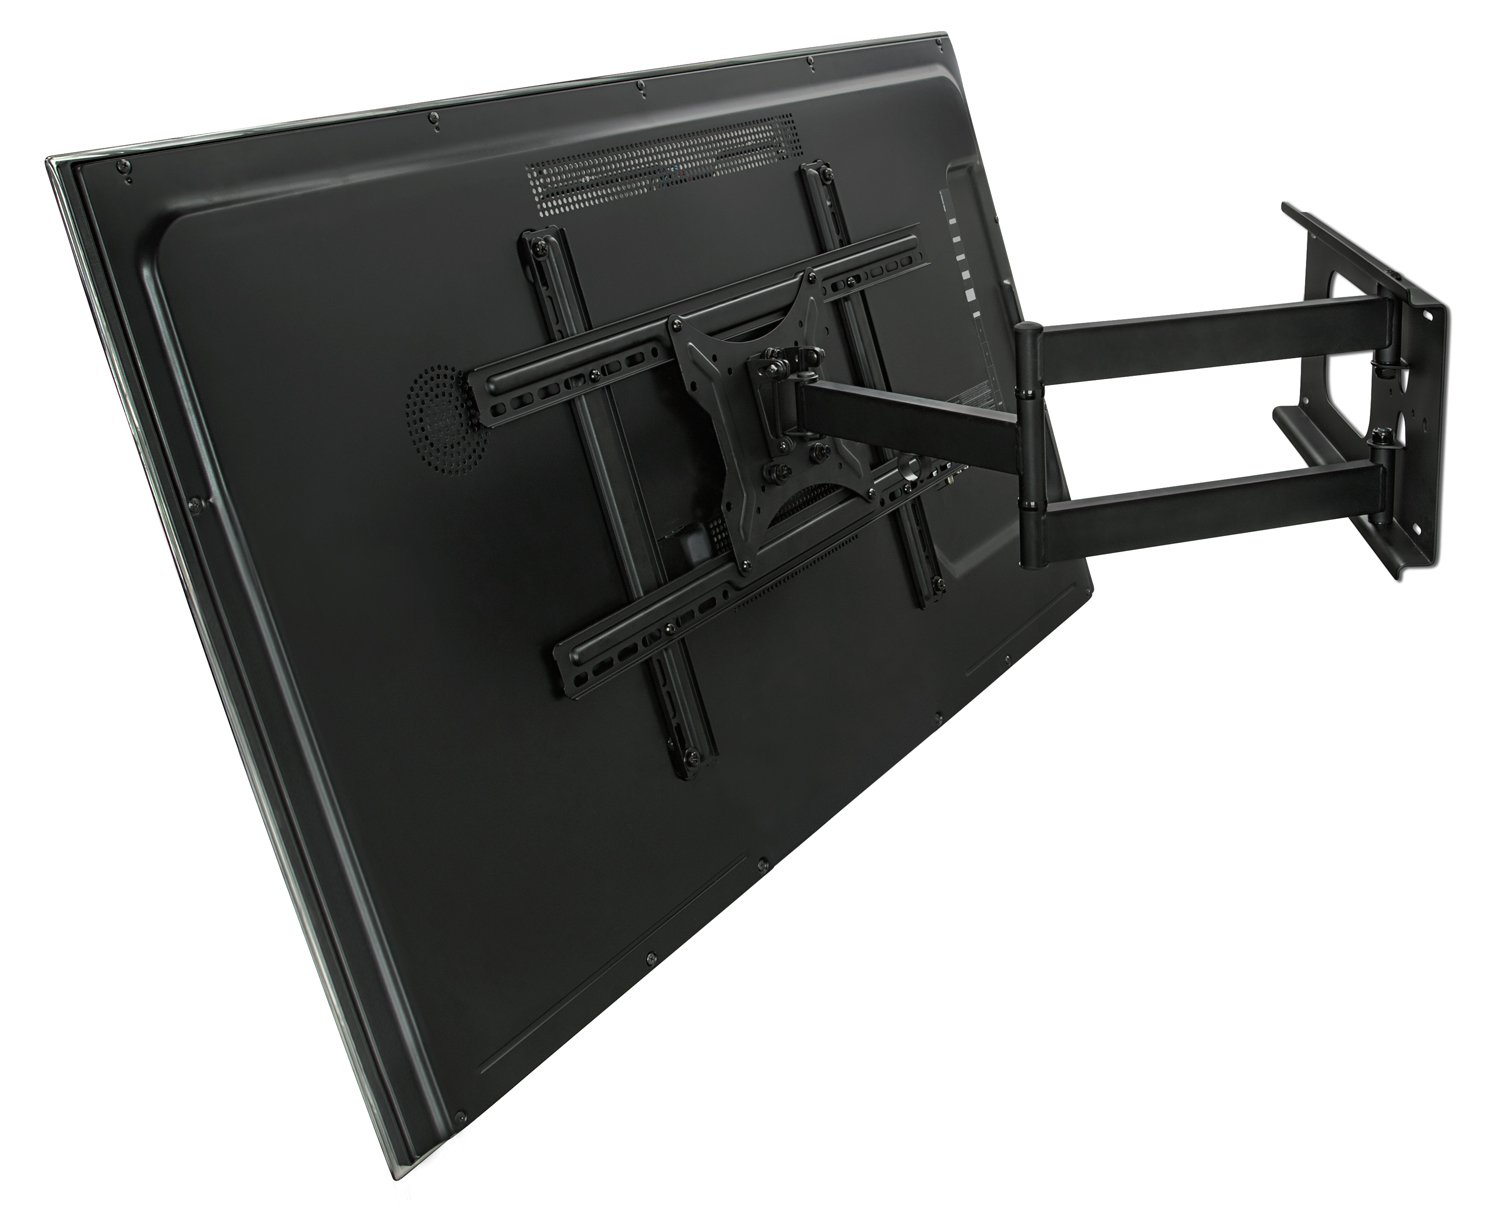 Amazon.com: Mount-It! Articulating, Full Motion TV Wall Mount Bracket for 32